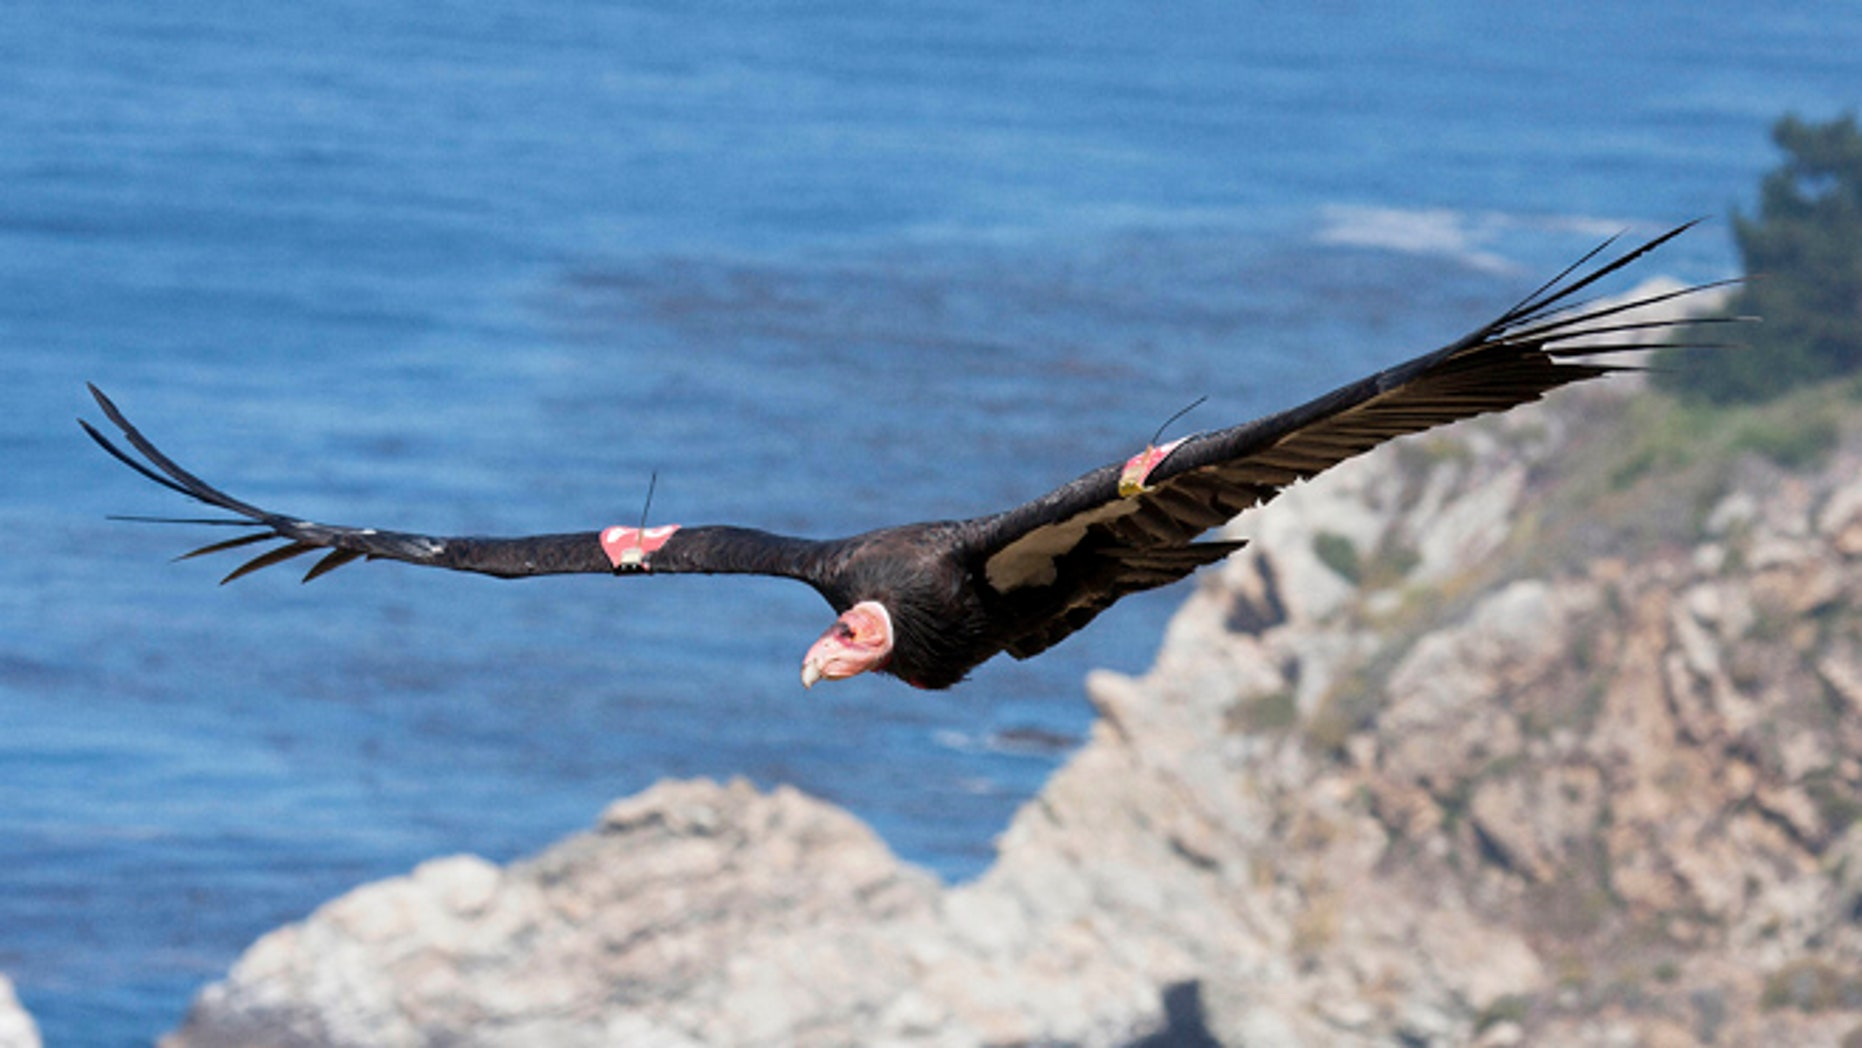 July 21, 2012: This file photo provided by the Ventana Wildlife Society shows a condor in flight in Big Sur, Calif.